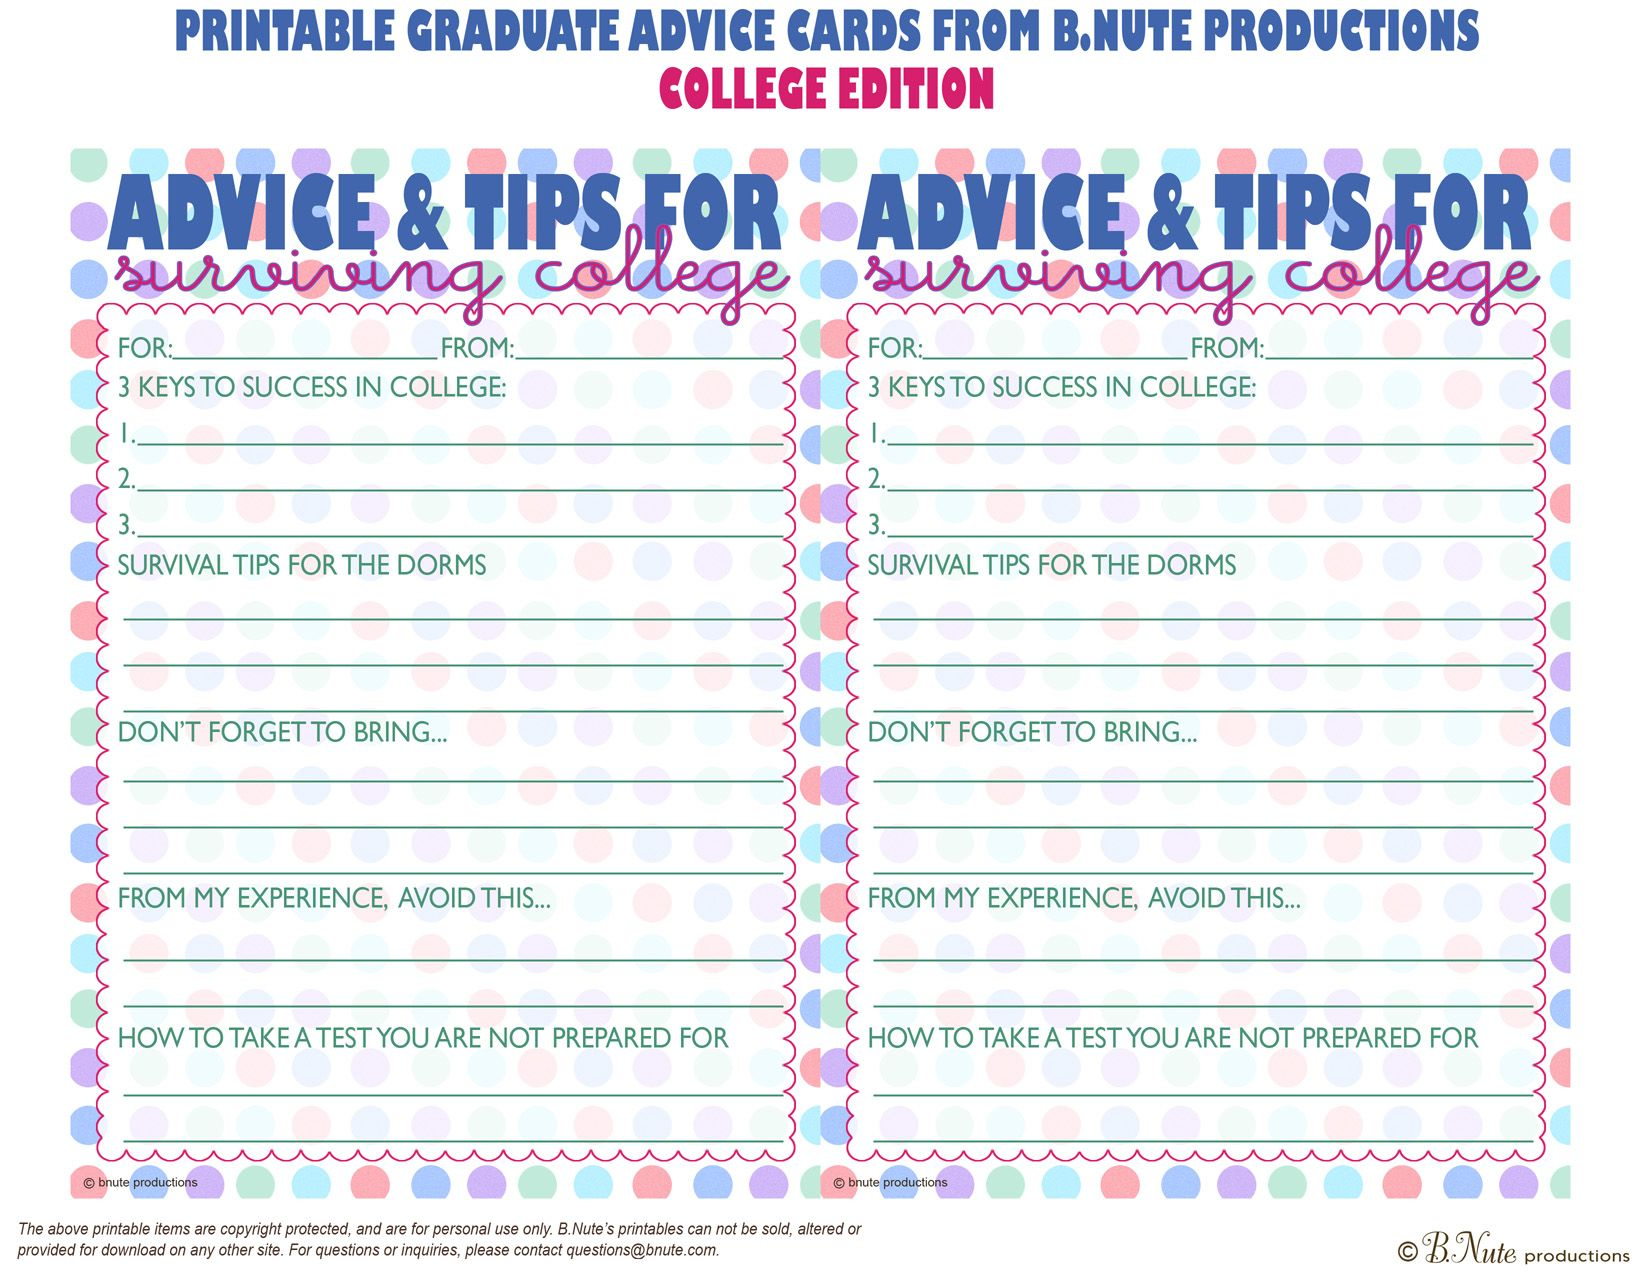 Bnute Productions Free Printable Graduate Advice Cards